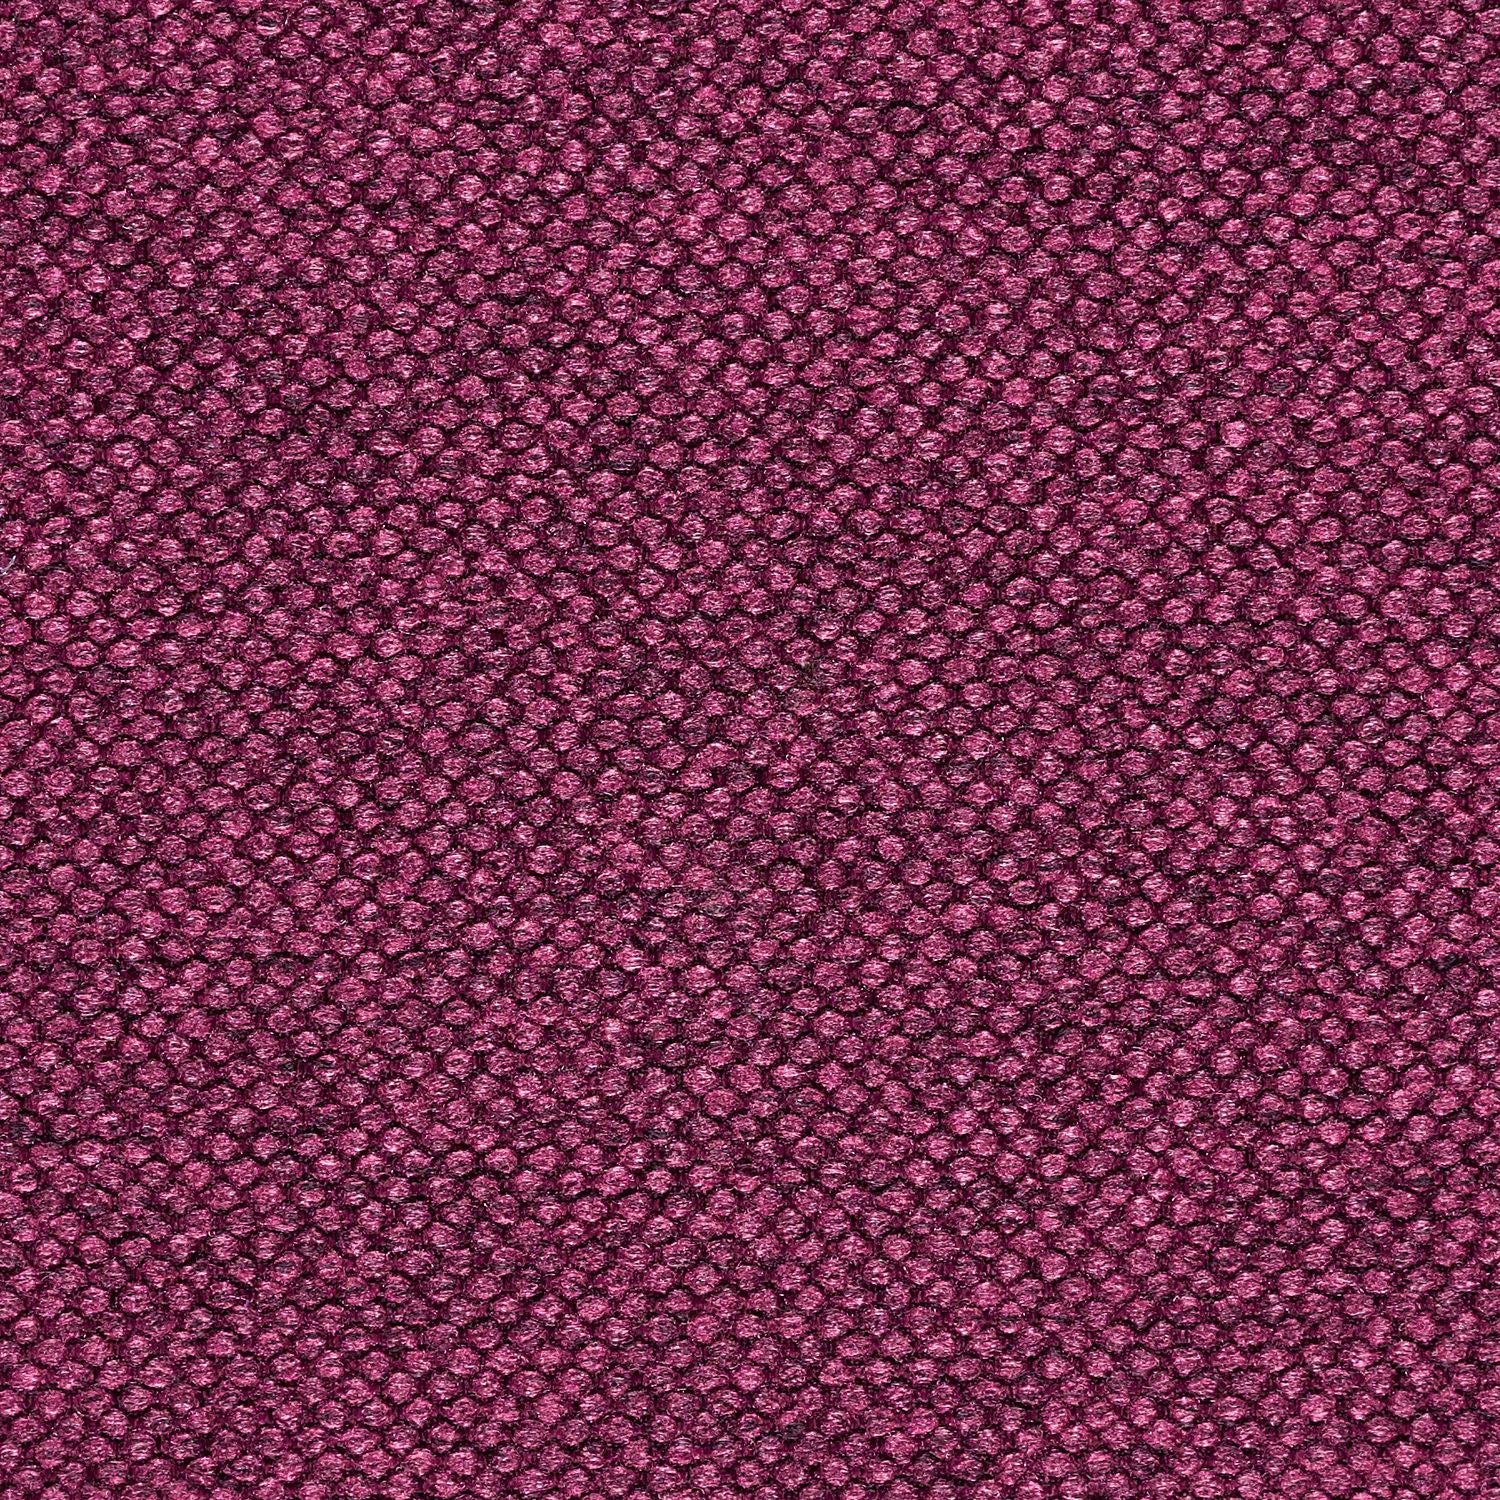 Digi Tweed - Beetroot Tweed - 4058 - 16